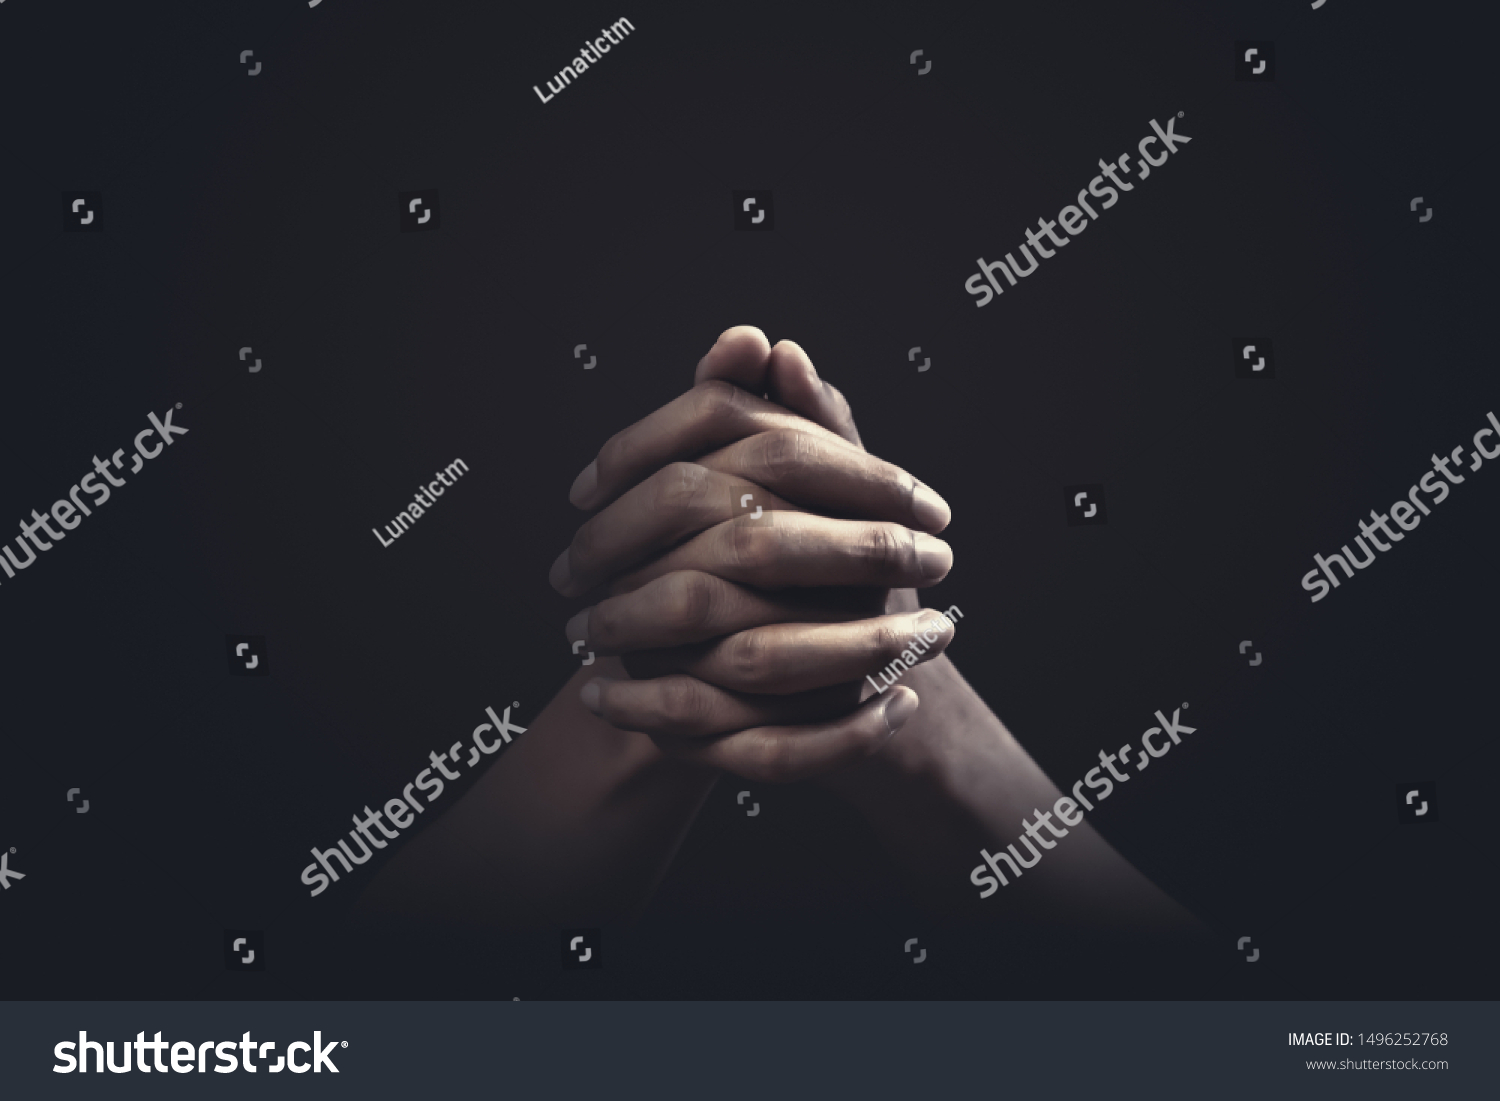 Praying hands with faith in religion and belief in God on dark background. Power of hope or love and devotion. #1496252768